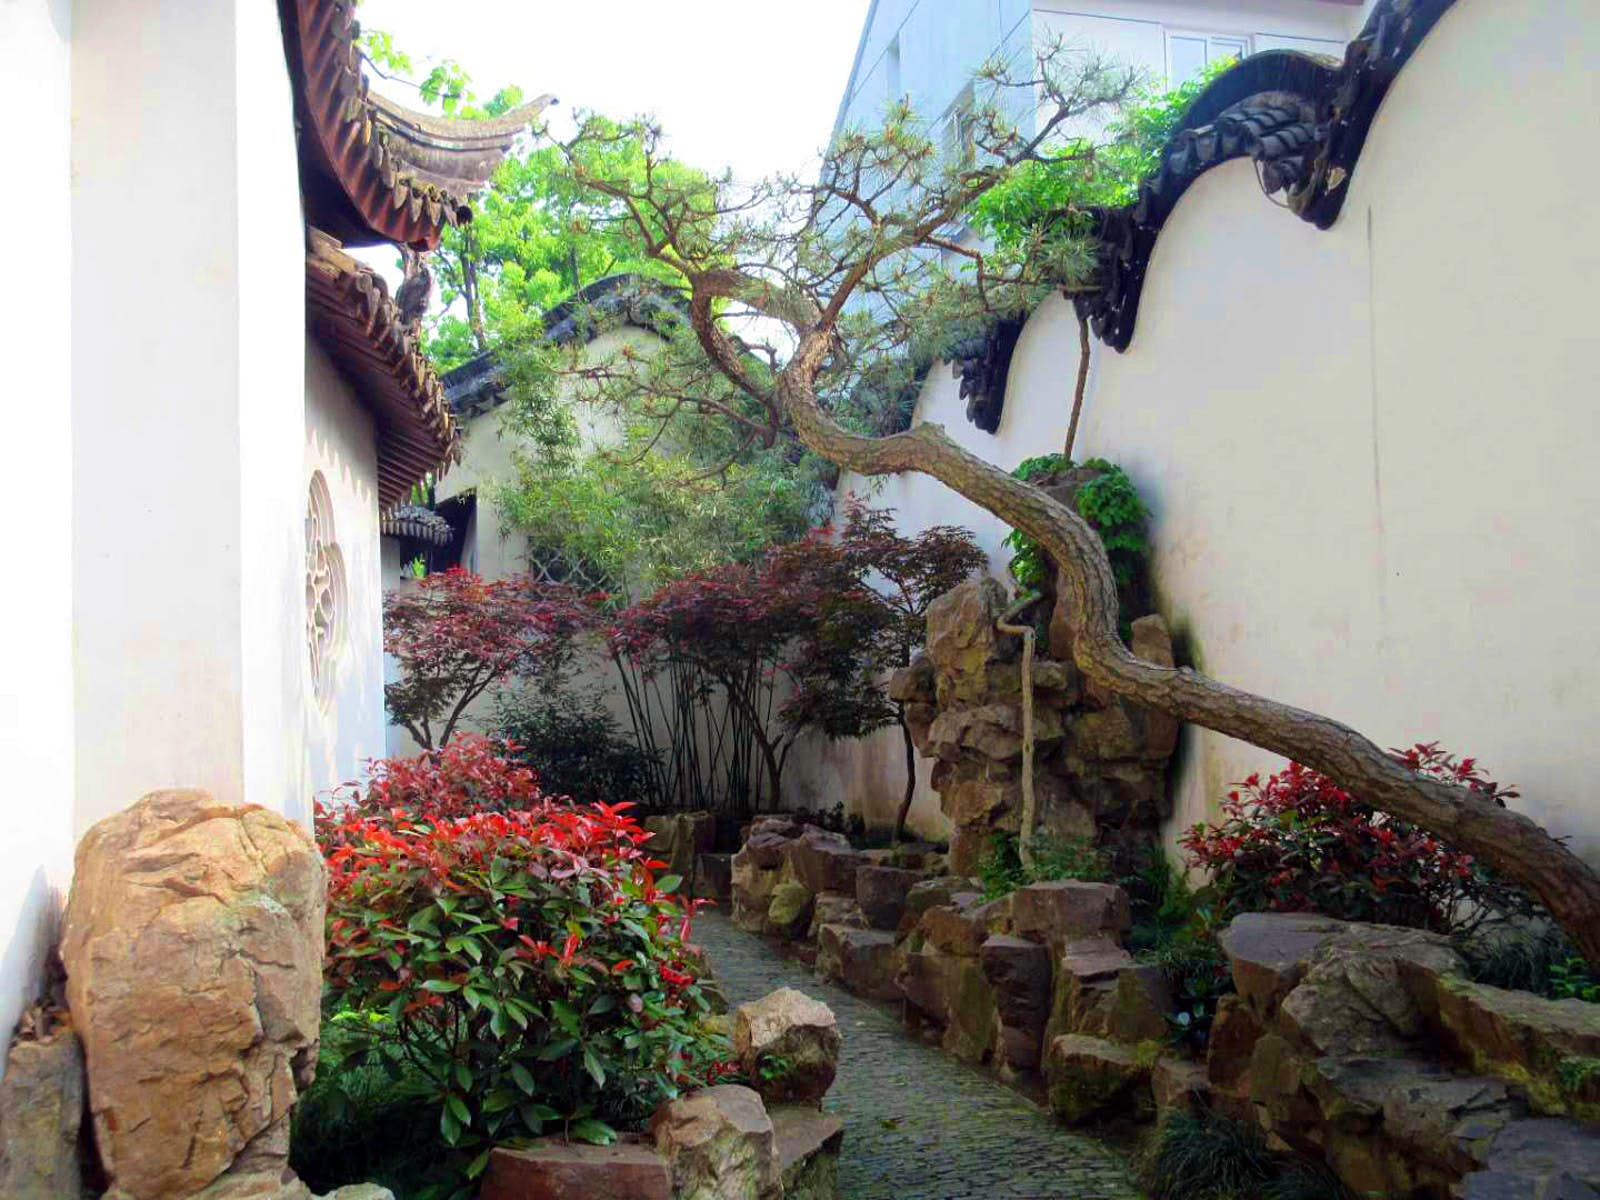 Small shrubs with red flowers and a gnarled tree decorate a narrow passageway through the garden. Gardens were usually walled compounds that served as private residences for intellectuals and retired officials © Tess Humphrys / Lonely Planet